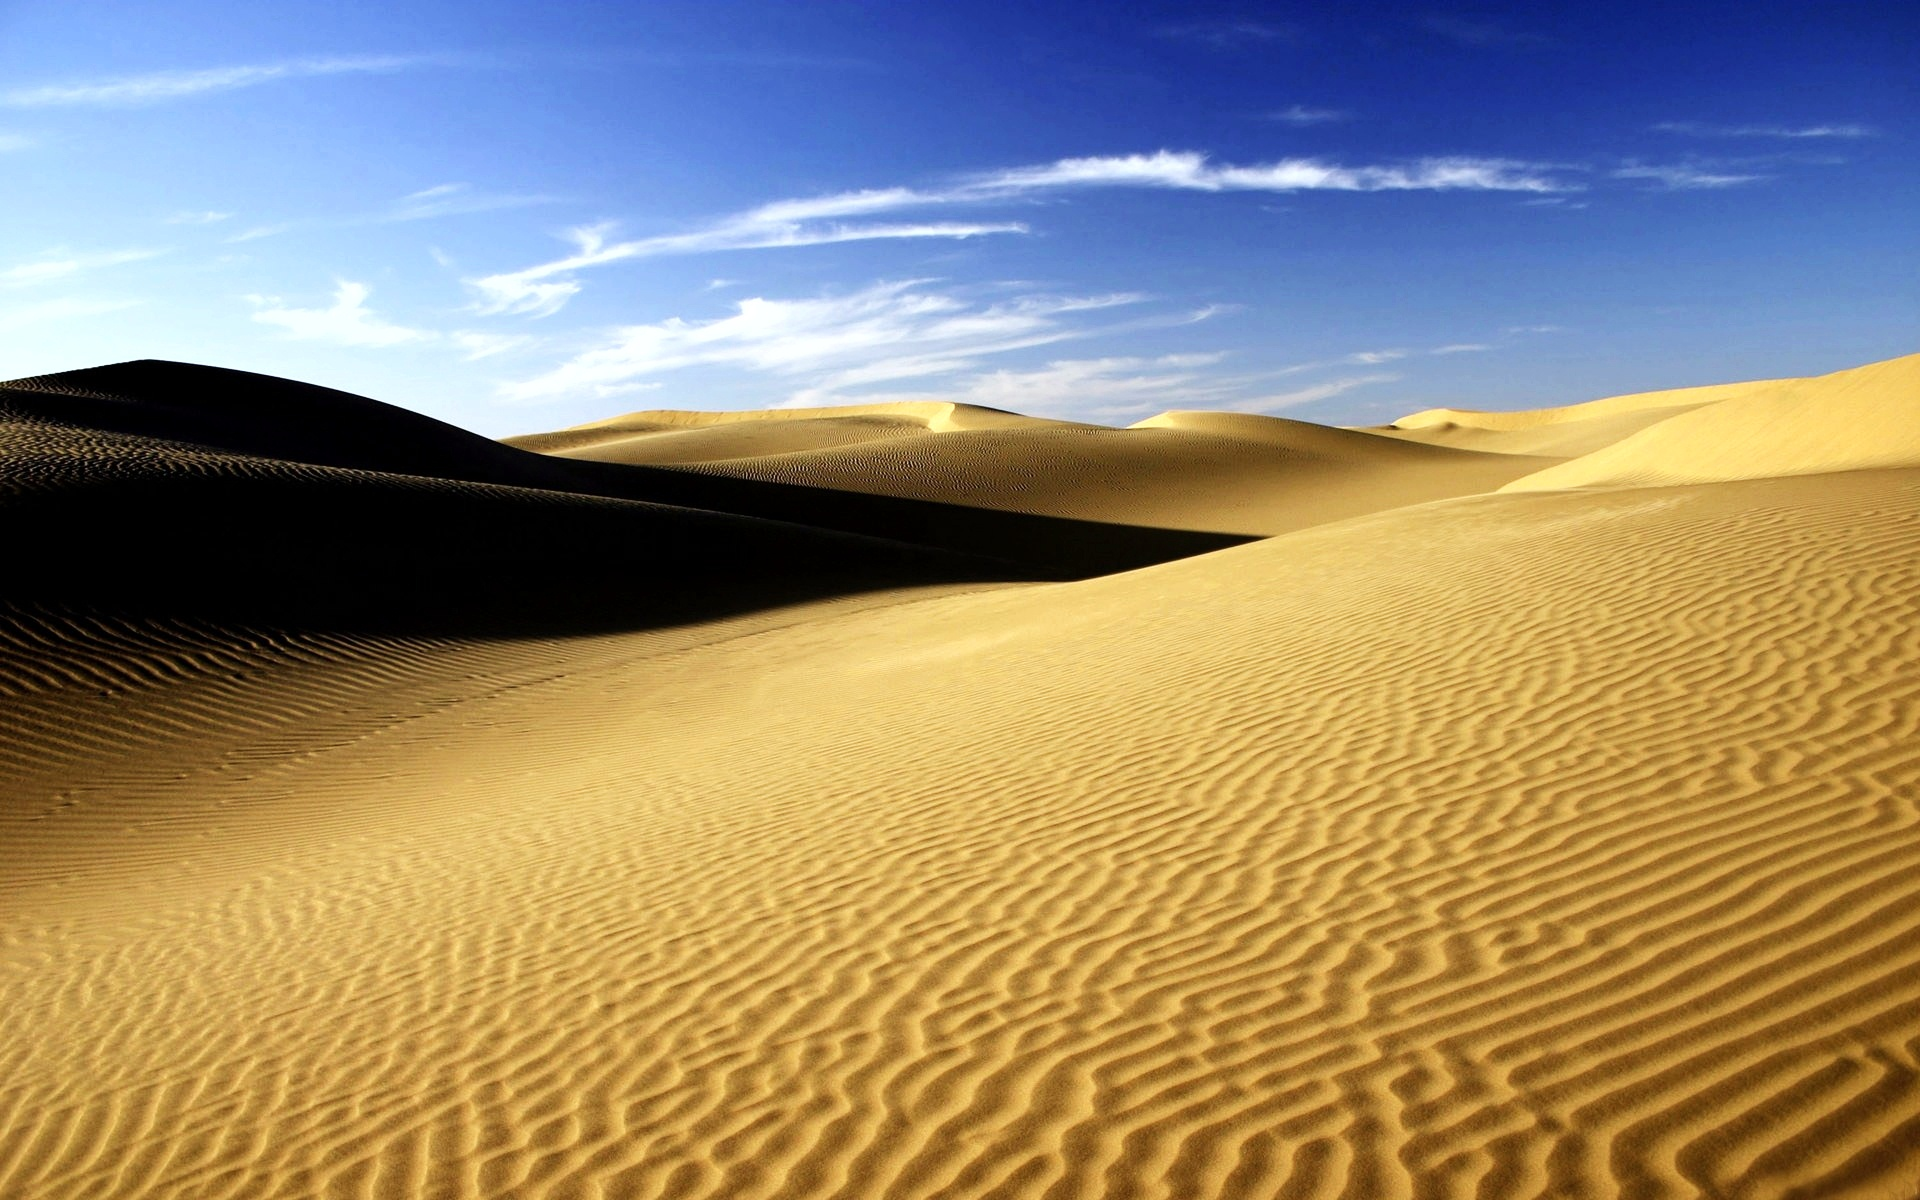 Sahara Desert 4182479 1920x1200 All For Desktop